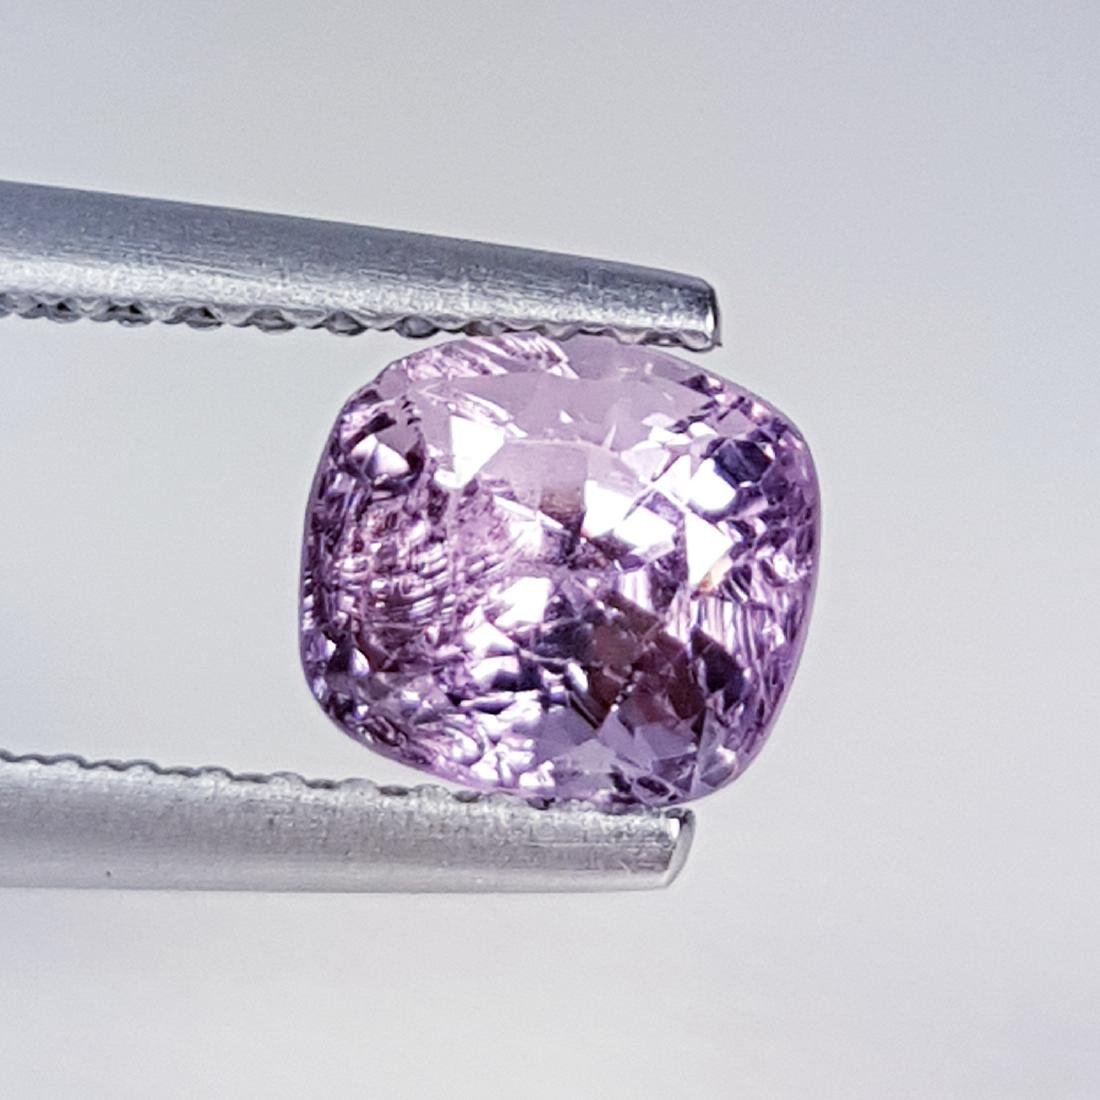 1.29 ct Awesome Gem Natural Spinel